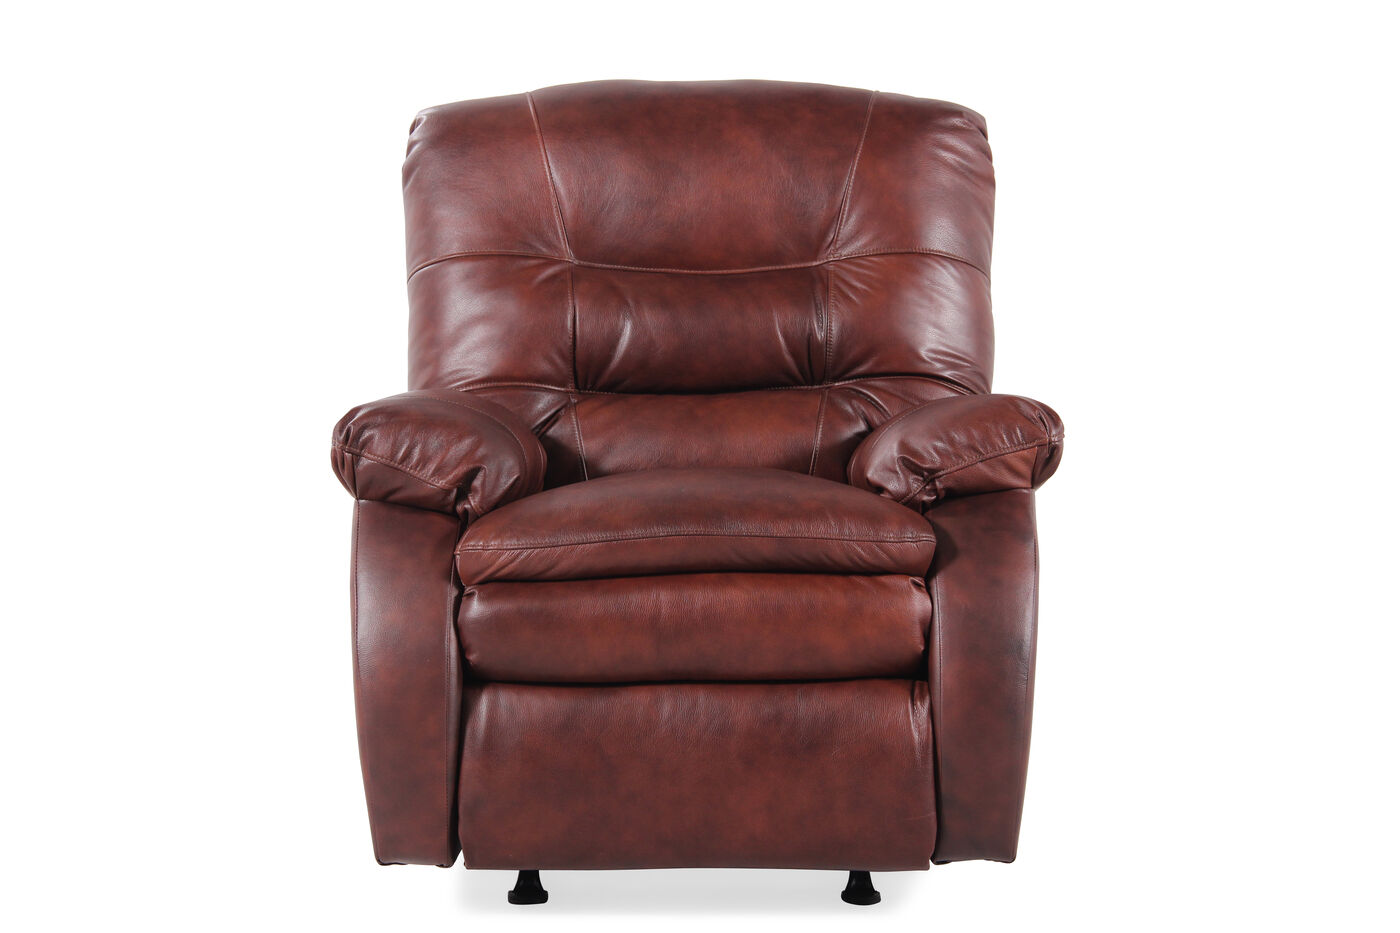 Leather 37 Quot Rocking Recliner In Saddle Brown Mathis